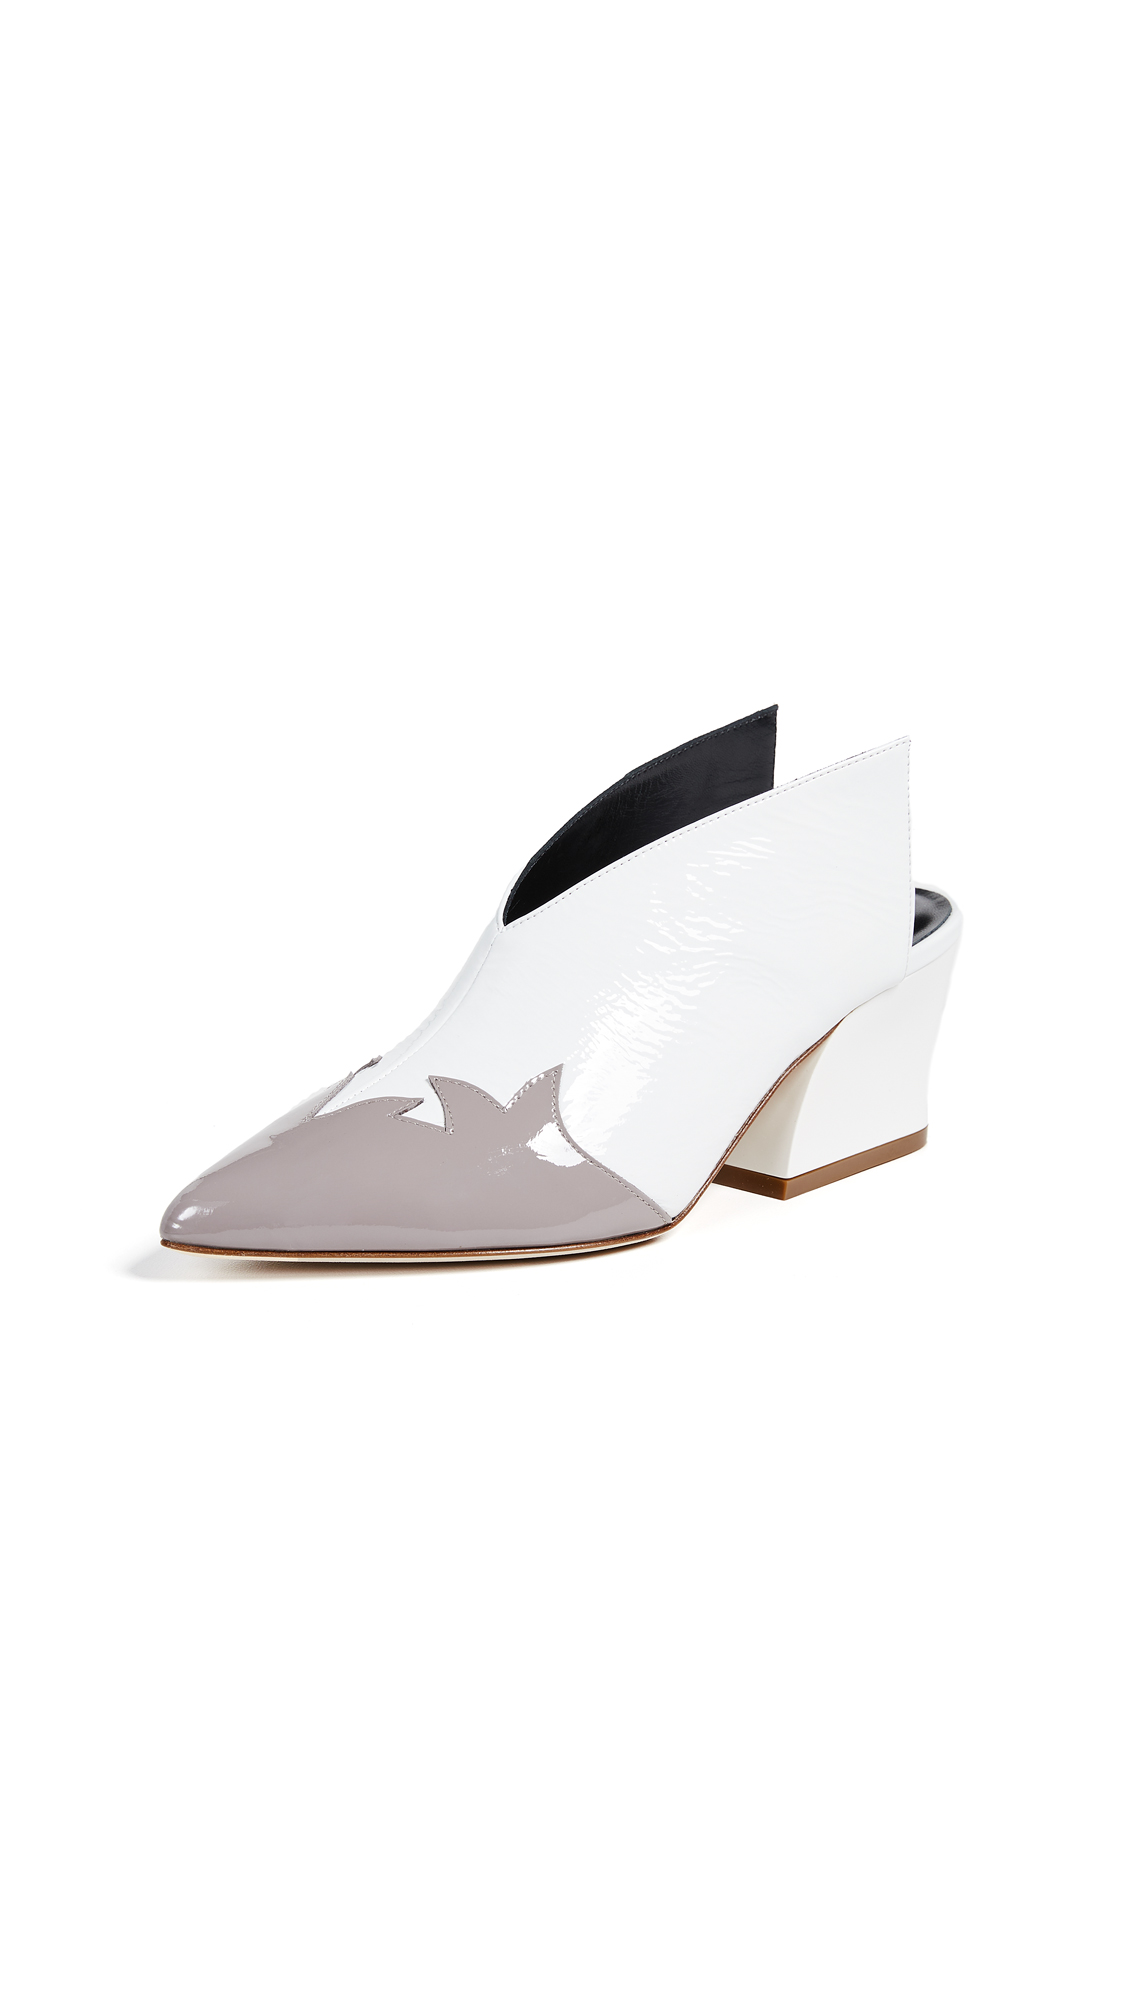 Tibi Floyd Mules - Bright White/Grey Multi